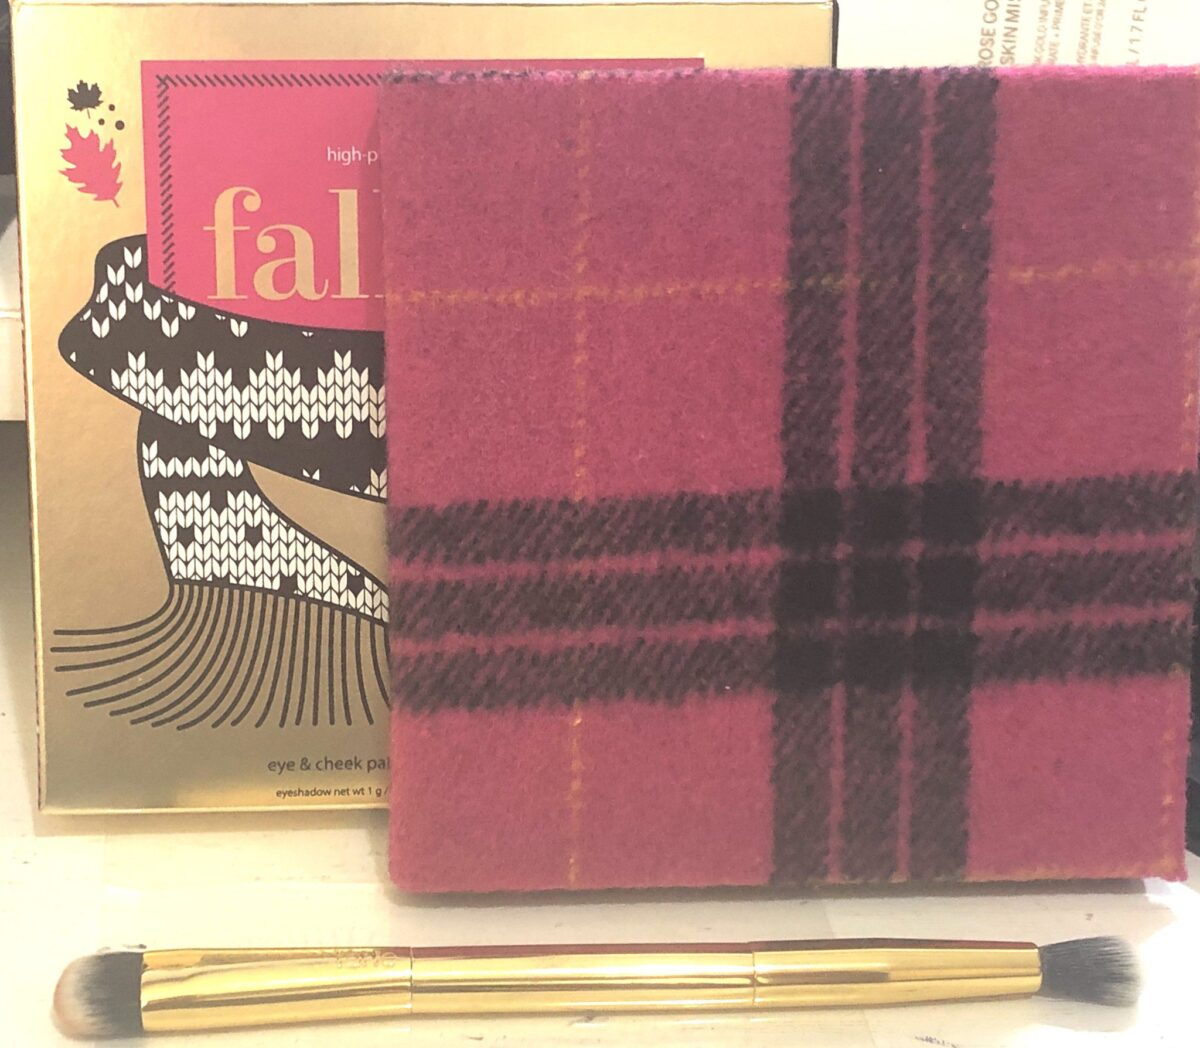 TARTE FALL FEELS EYE AND CHEEK PALETTE WITH DOUBLE-ENDED EYESHADOW BRUSH (QVC PURCHASE ONLY)